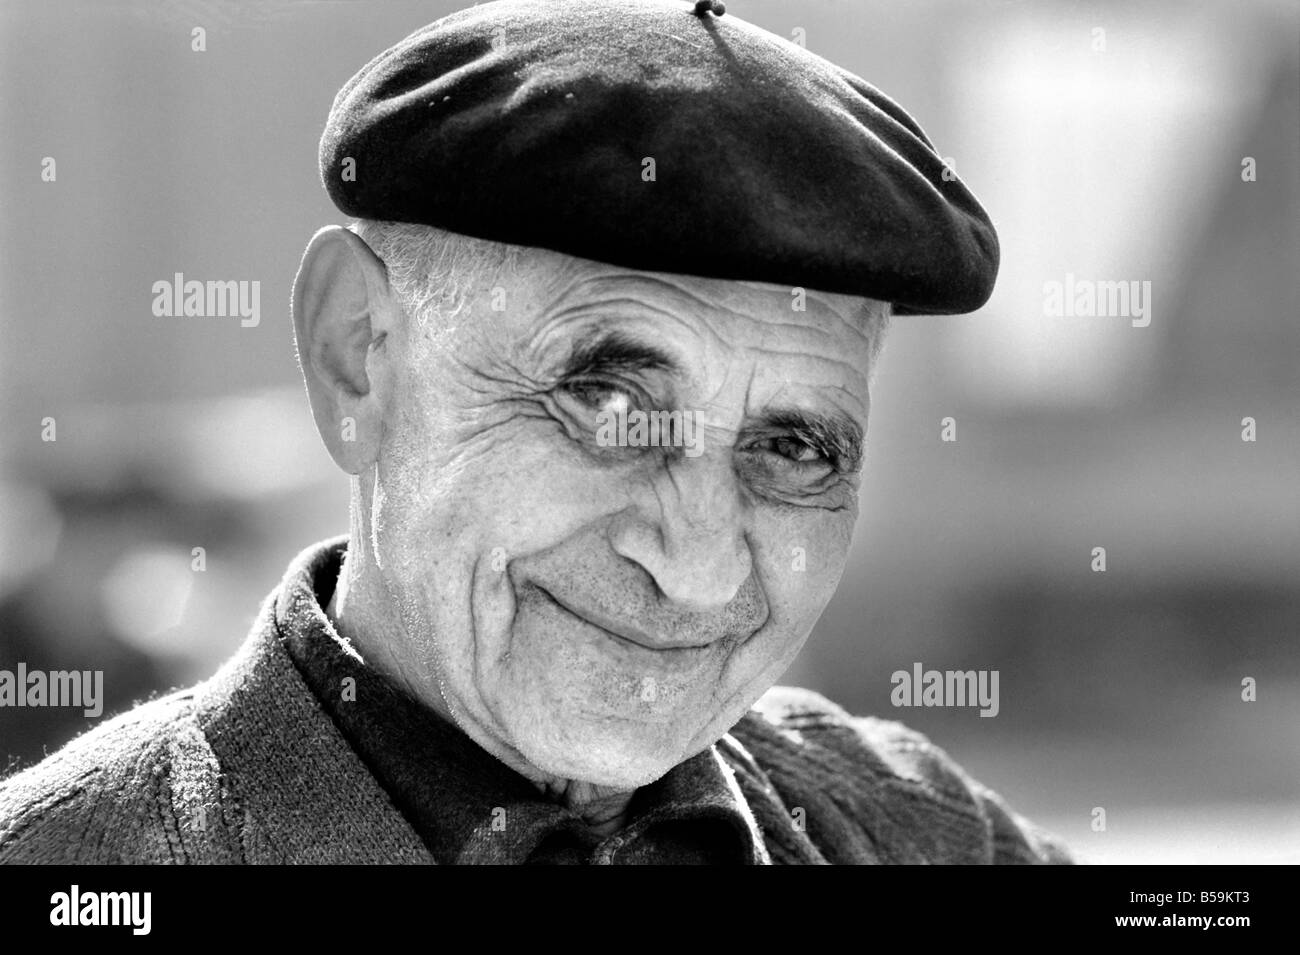 f88b3ba155bfc Elderly Man Wearing A Beret Stock Photos   Elderly Man Wearing A ...